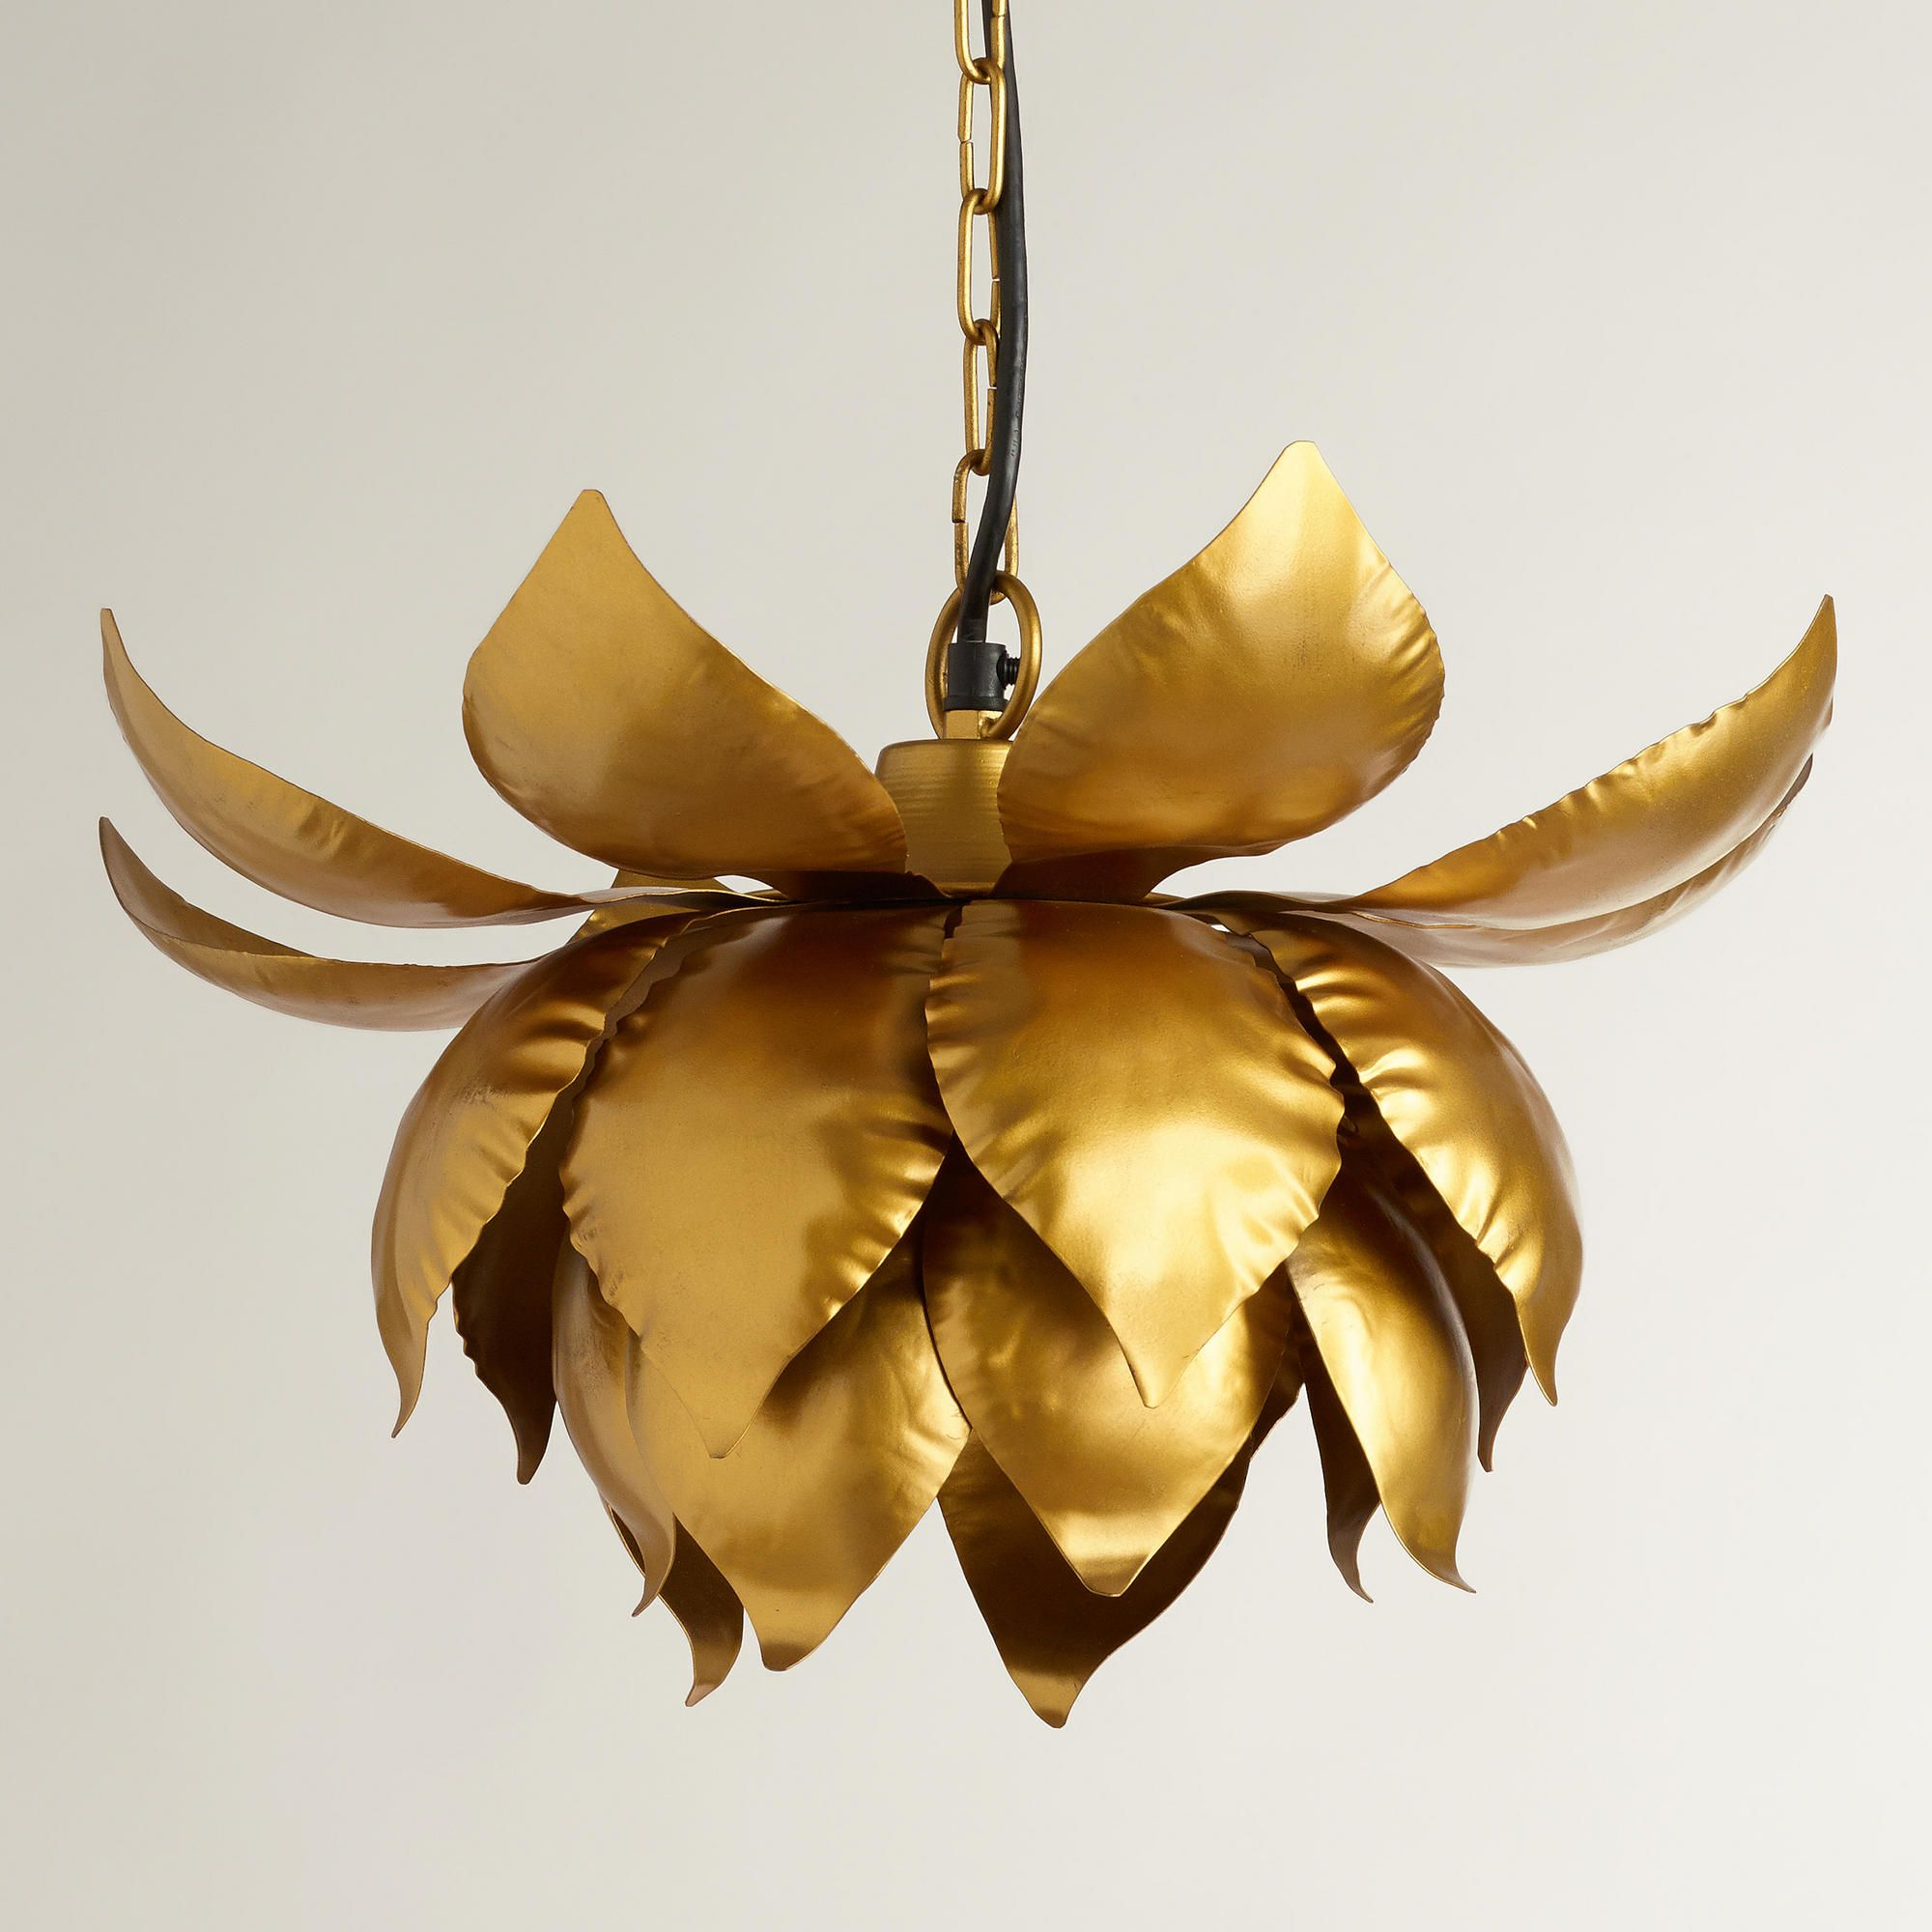 Gold Lotus Hanging Pendant Lamp Handcrafted In India 79